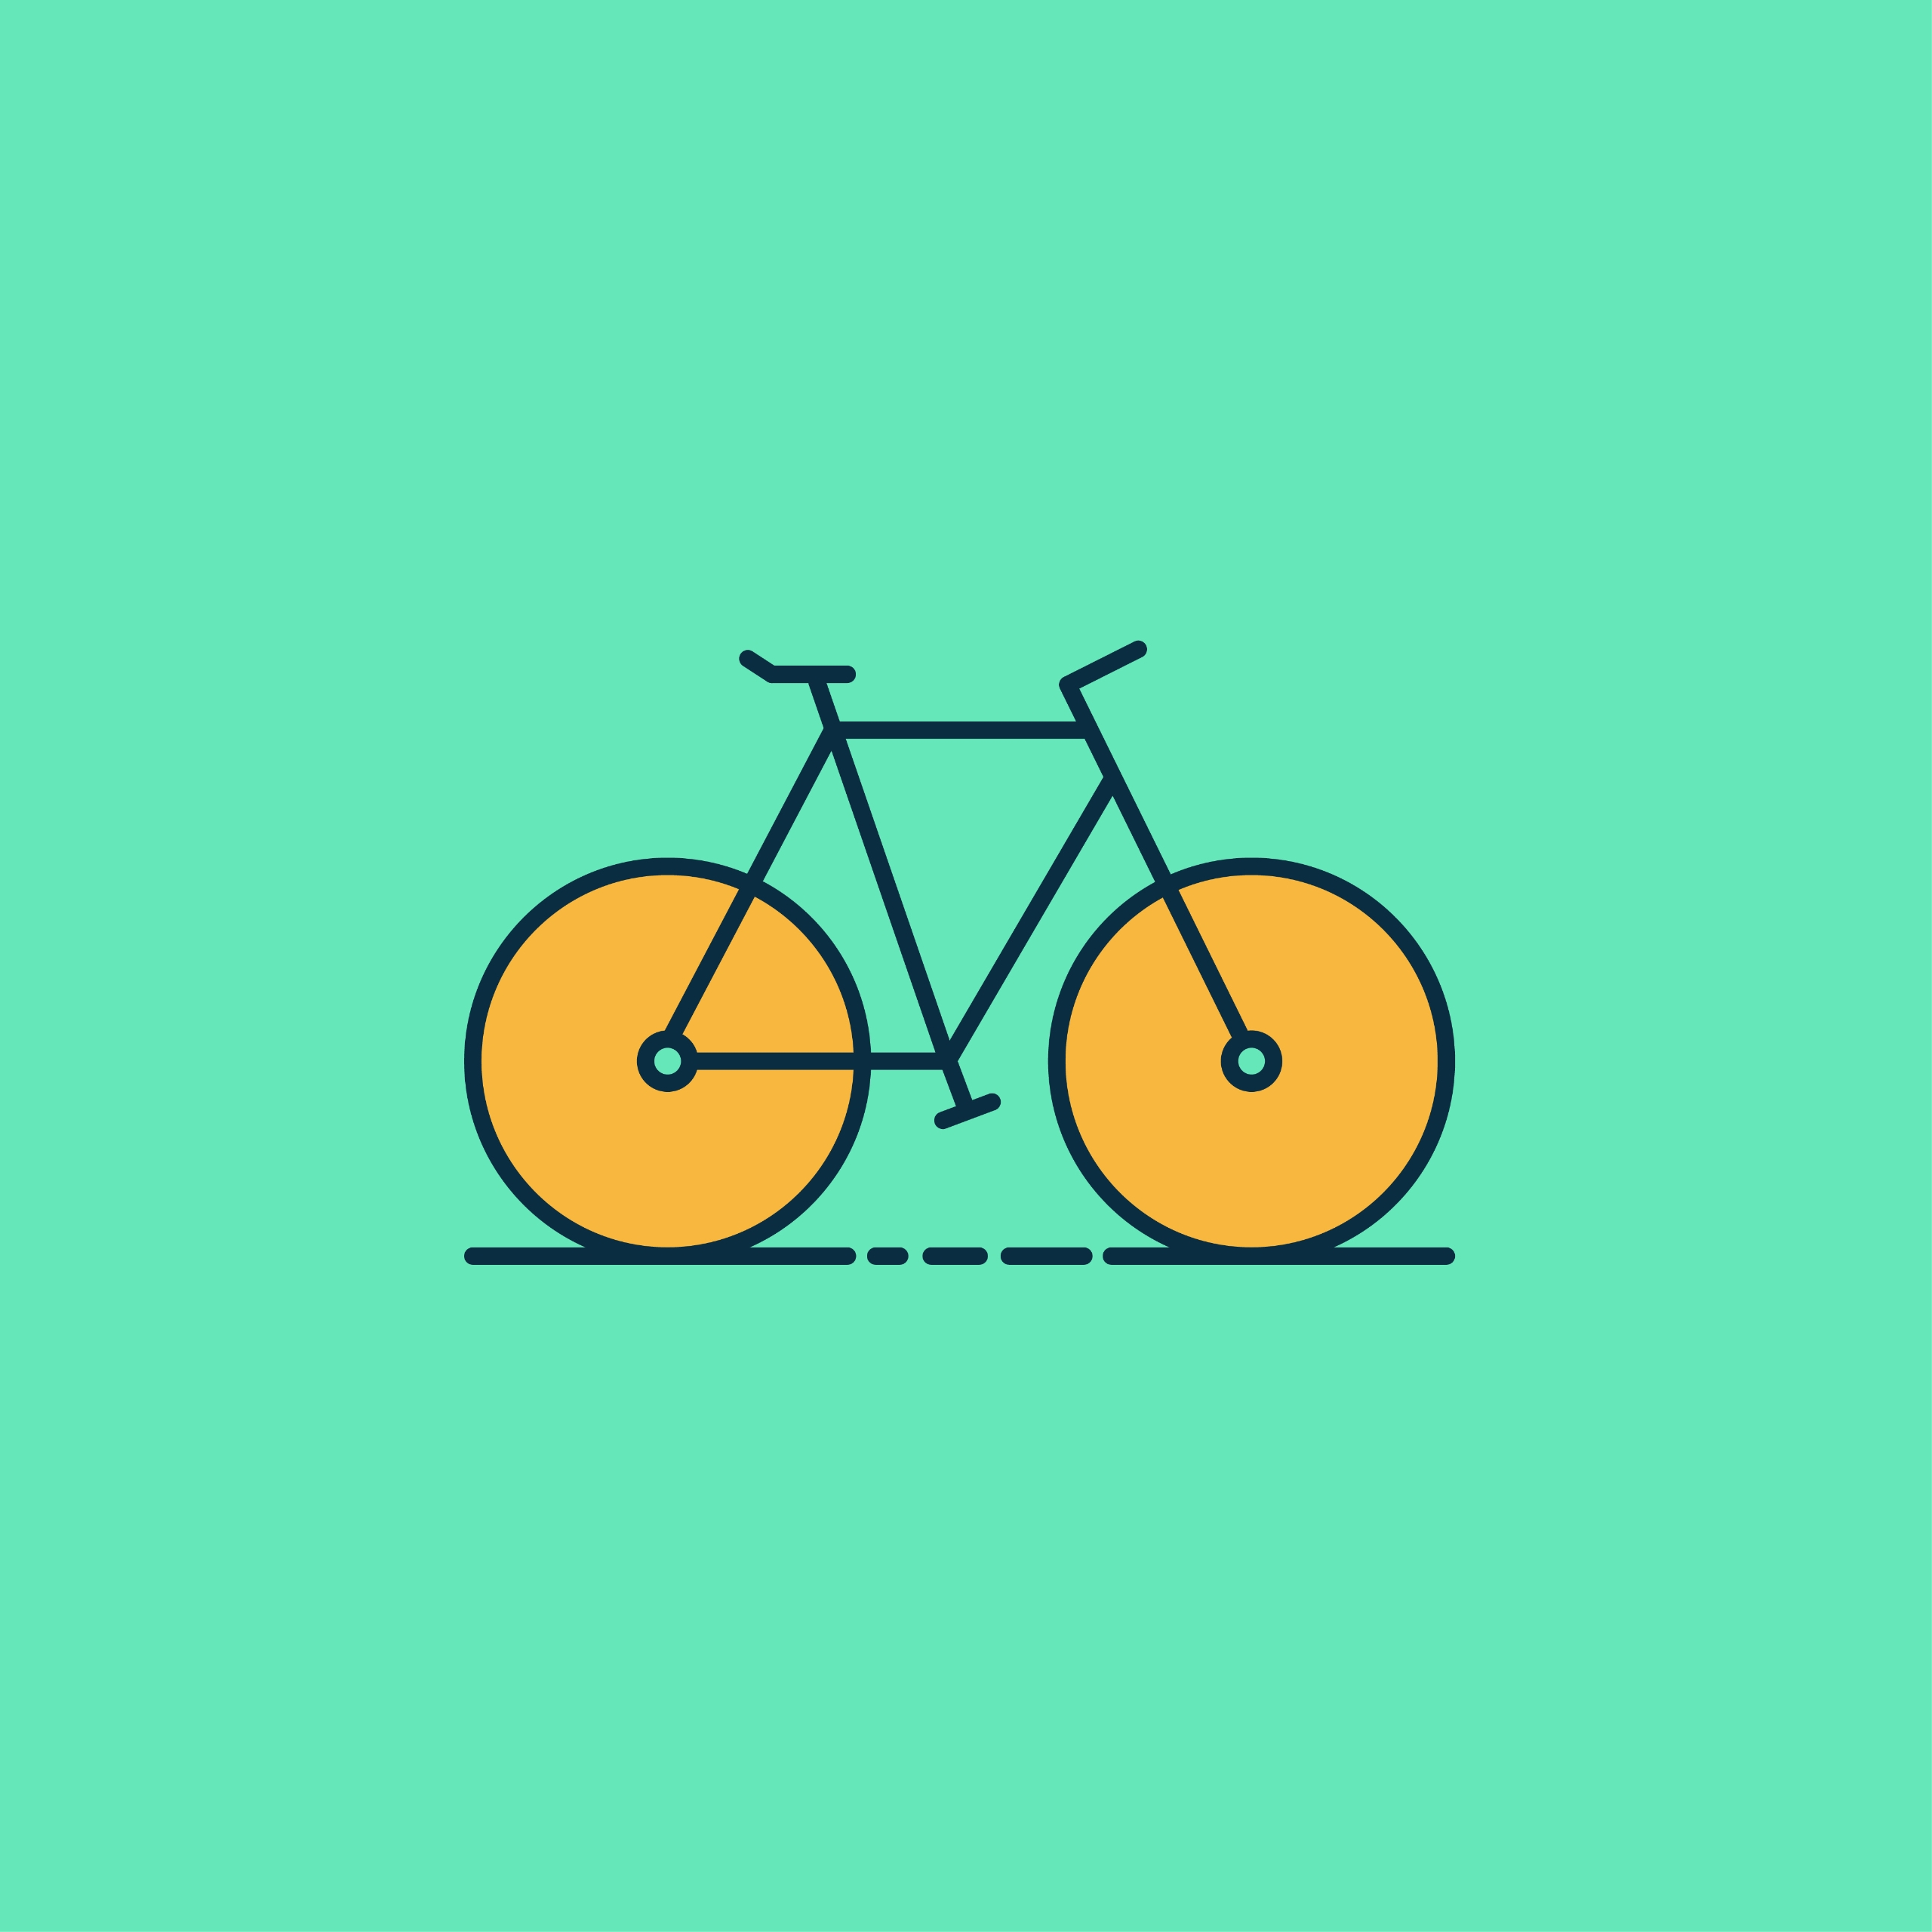 Illustration // Bike - design, illustration - ranaatasatan | ello